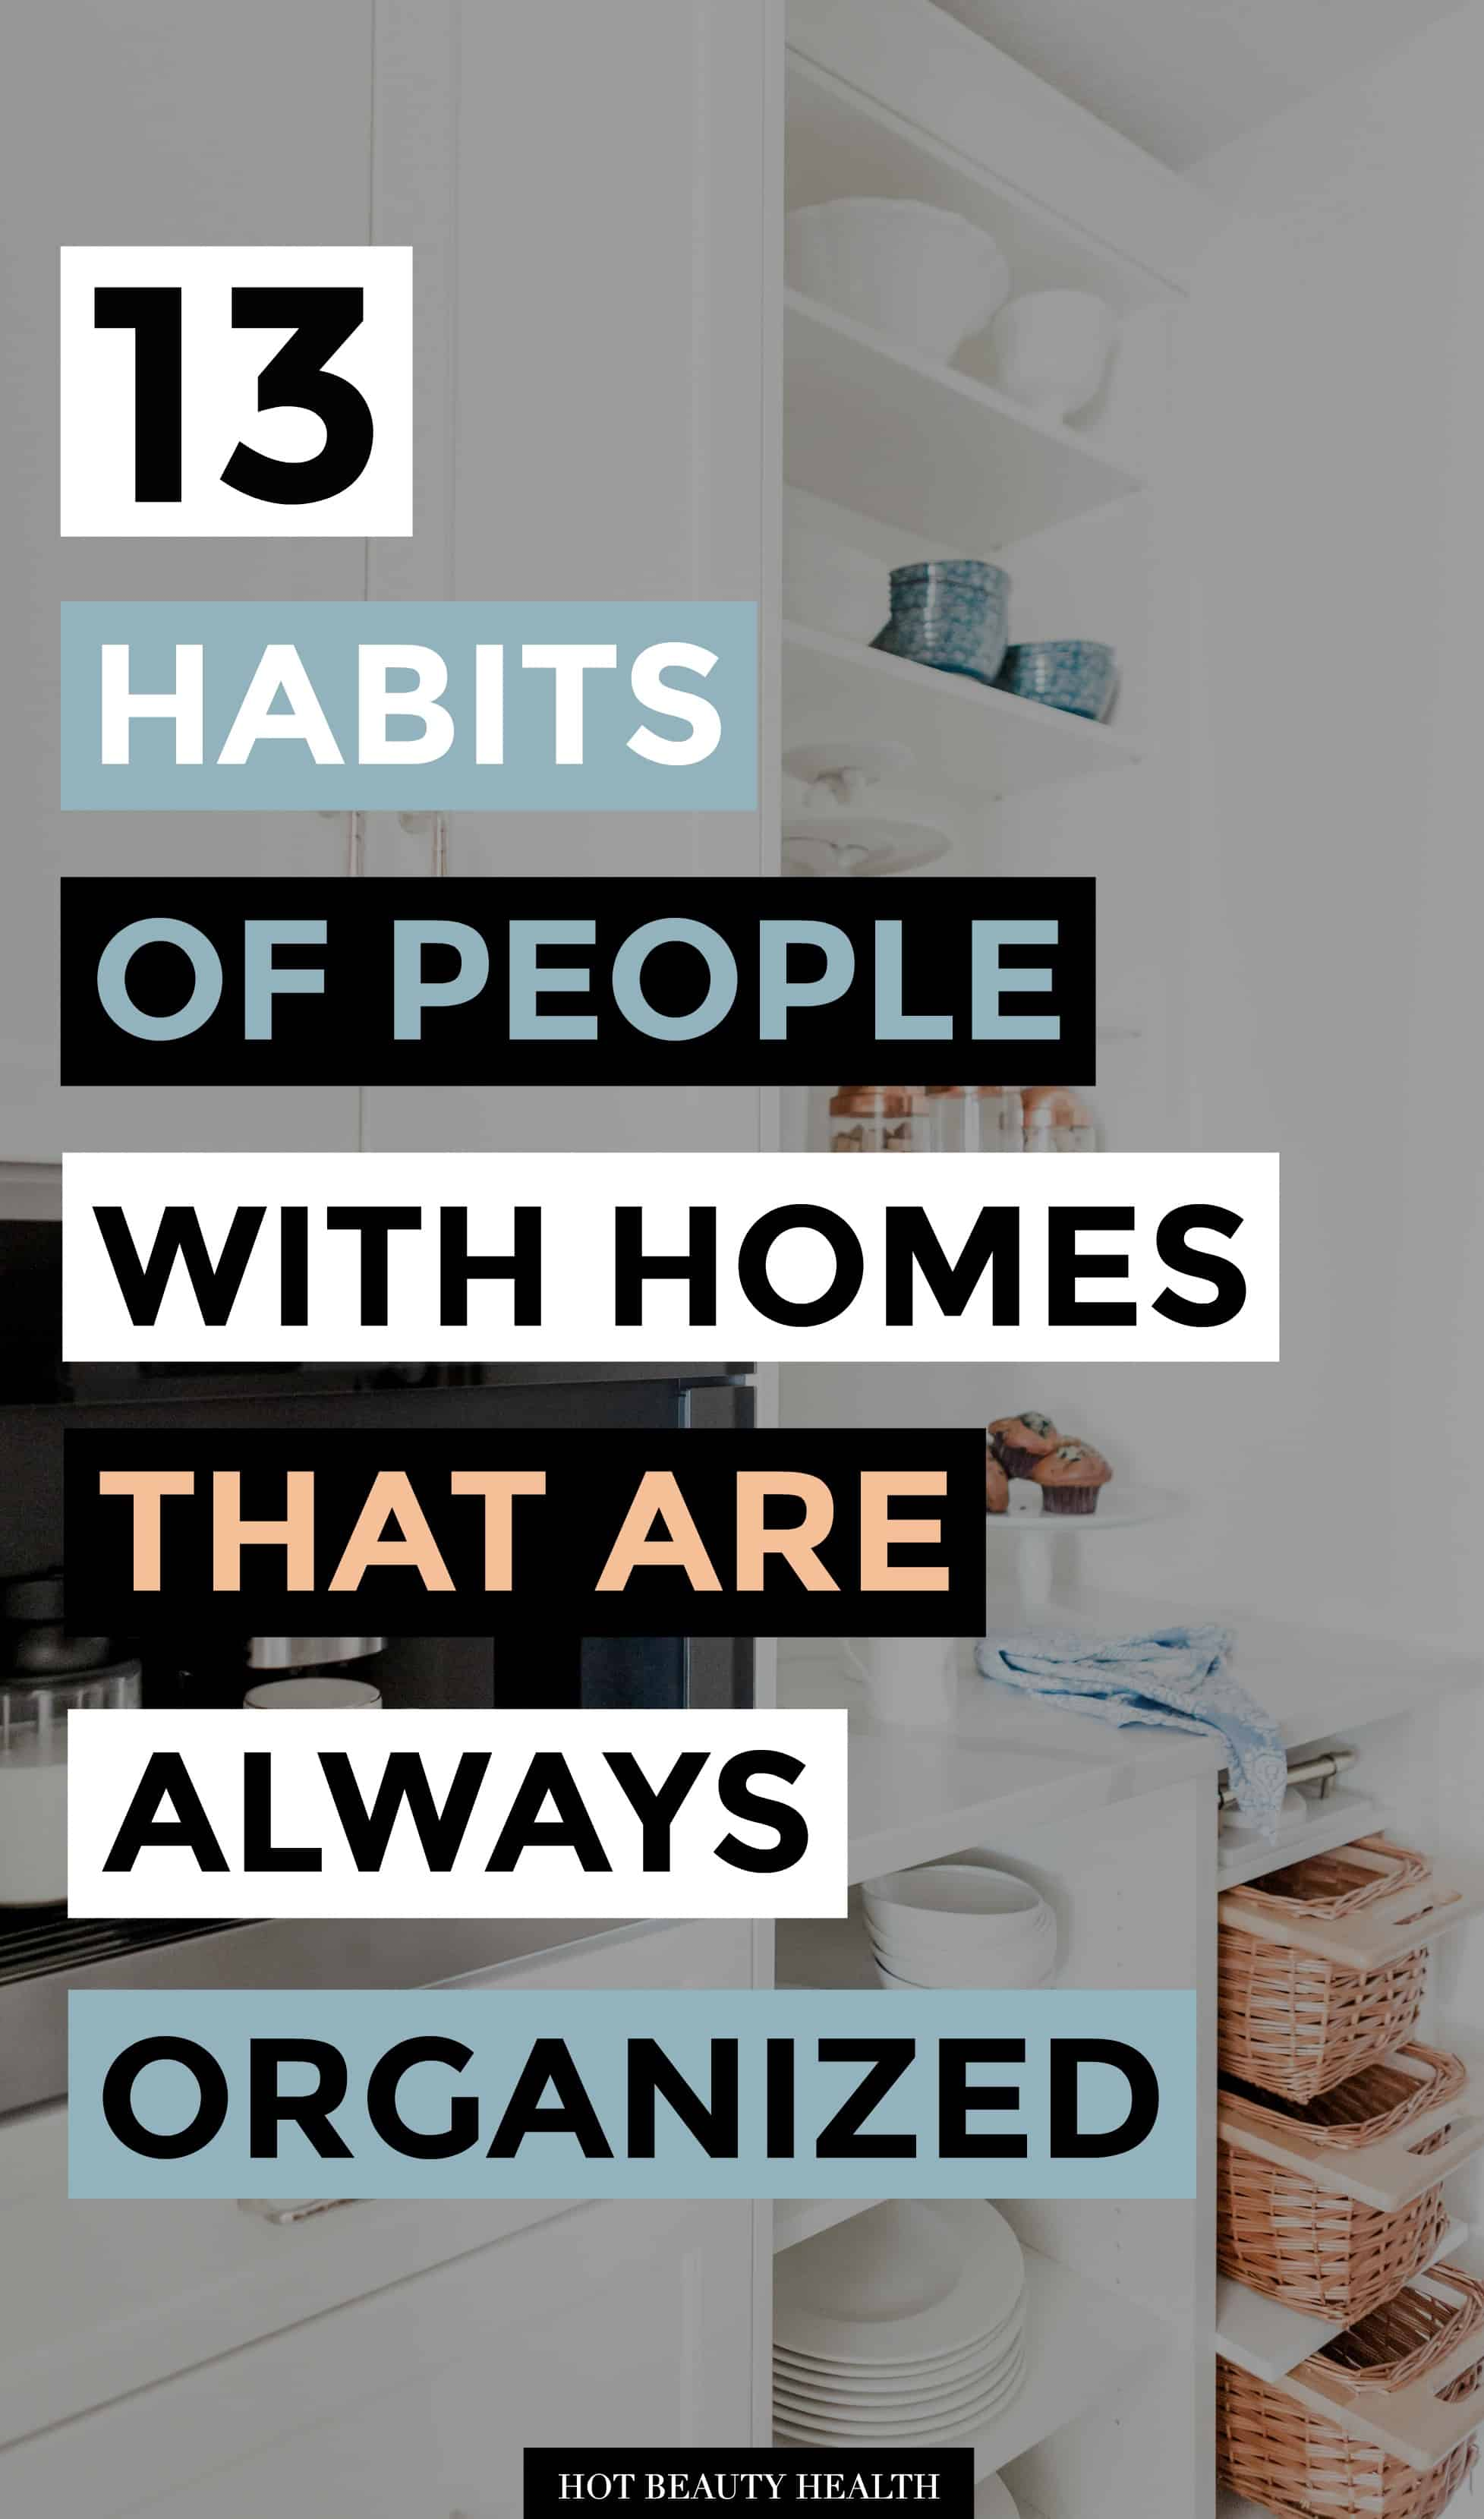 organized homes habits